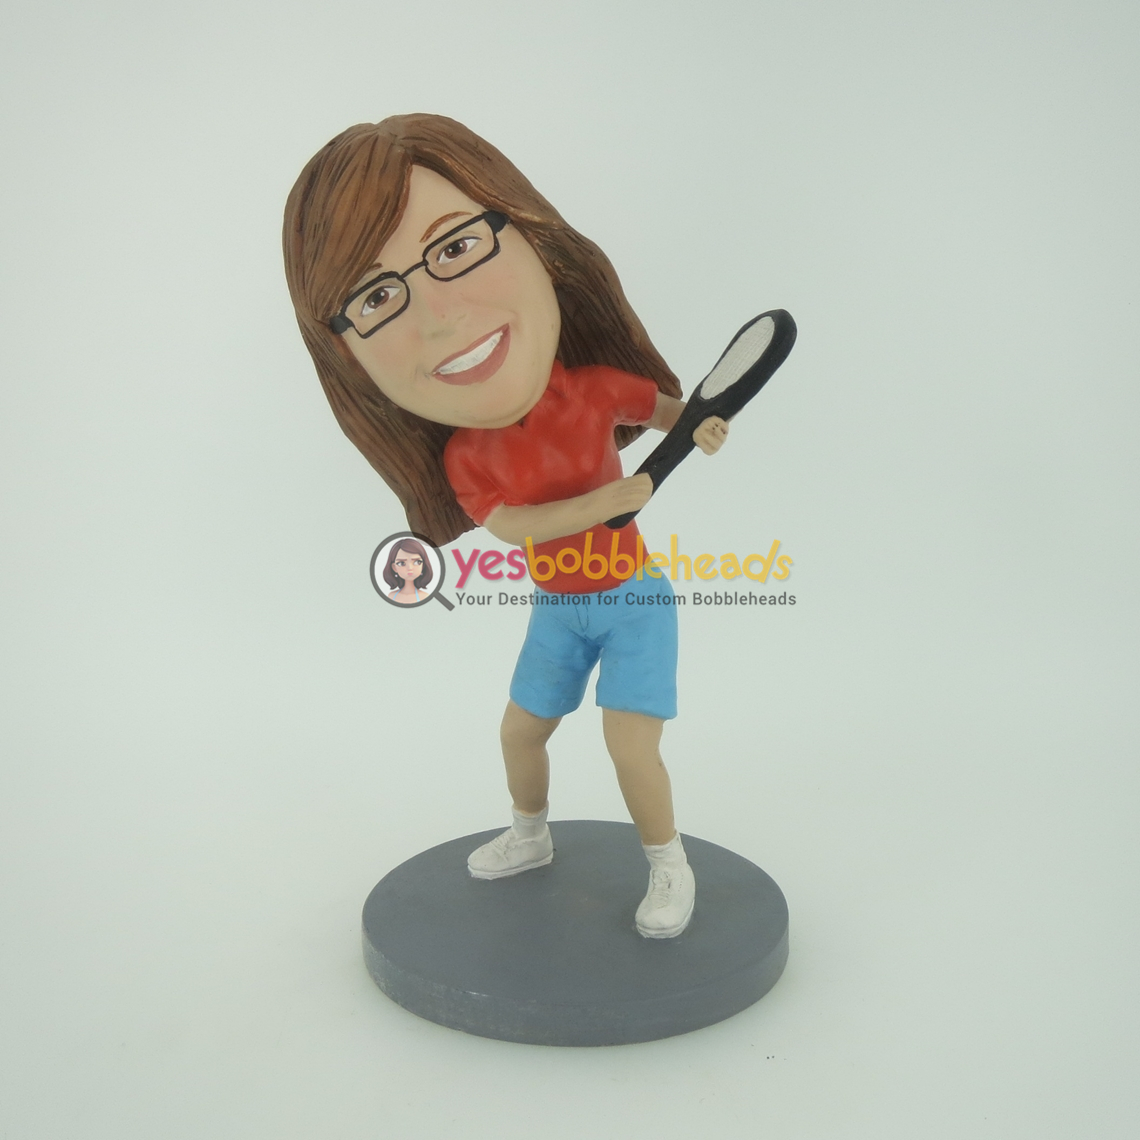 Picture of Custom Bobblehead Doll: Tennis Woman